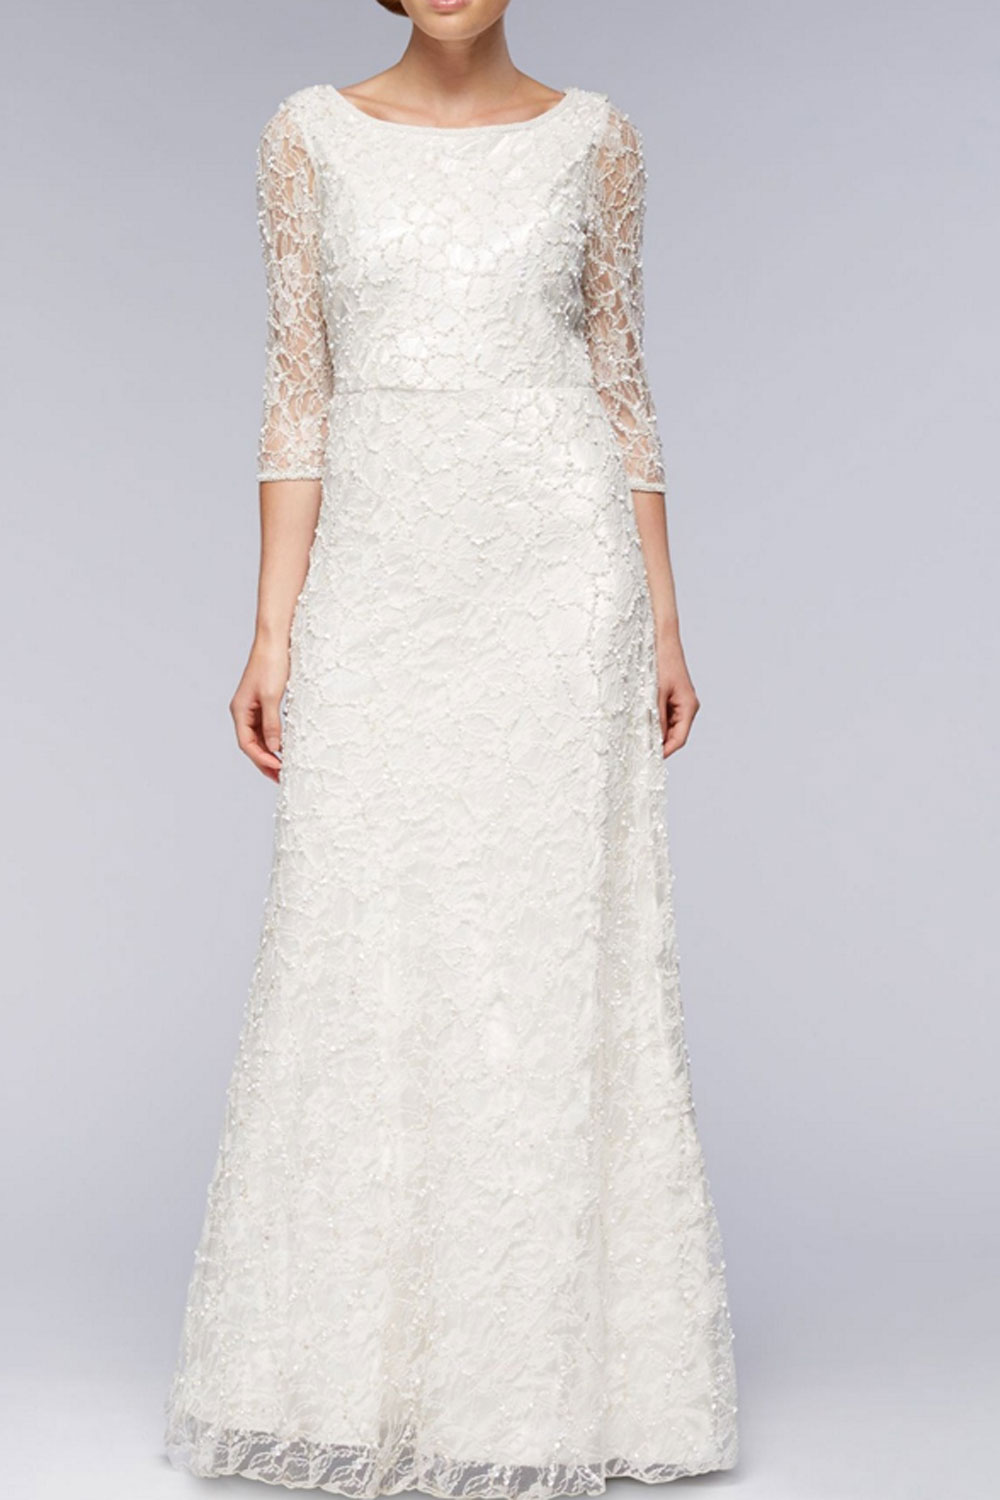 Plus Size Wedding Dresses for Under £700 | Look